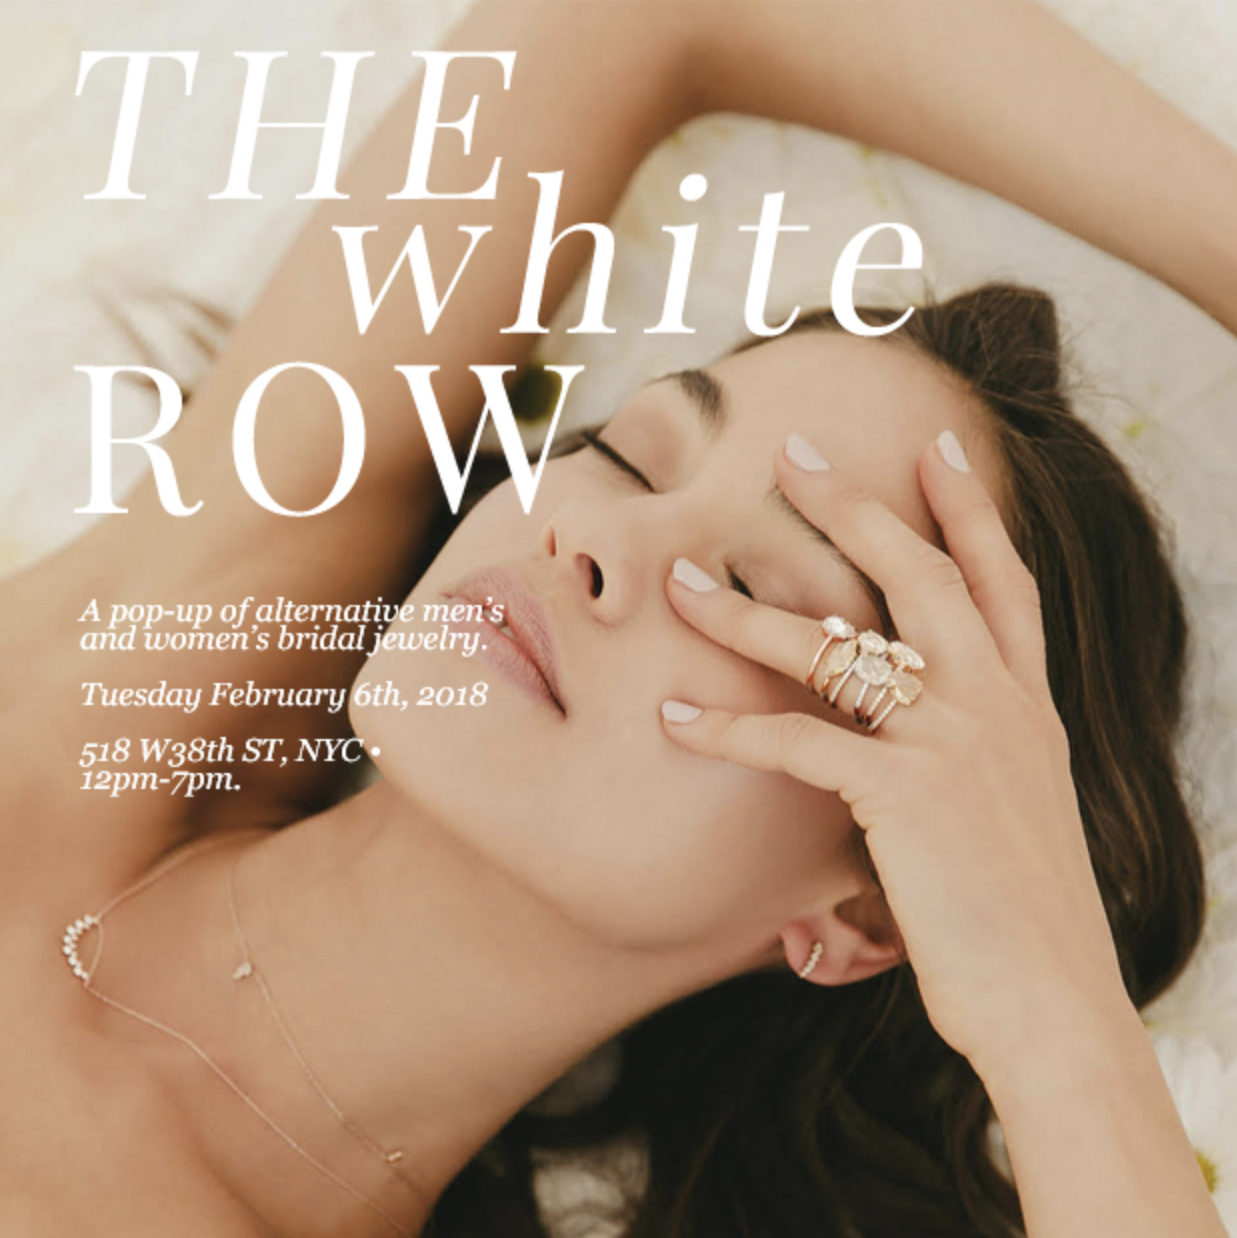 White Row Bridal Jewelry Event 2/6/18